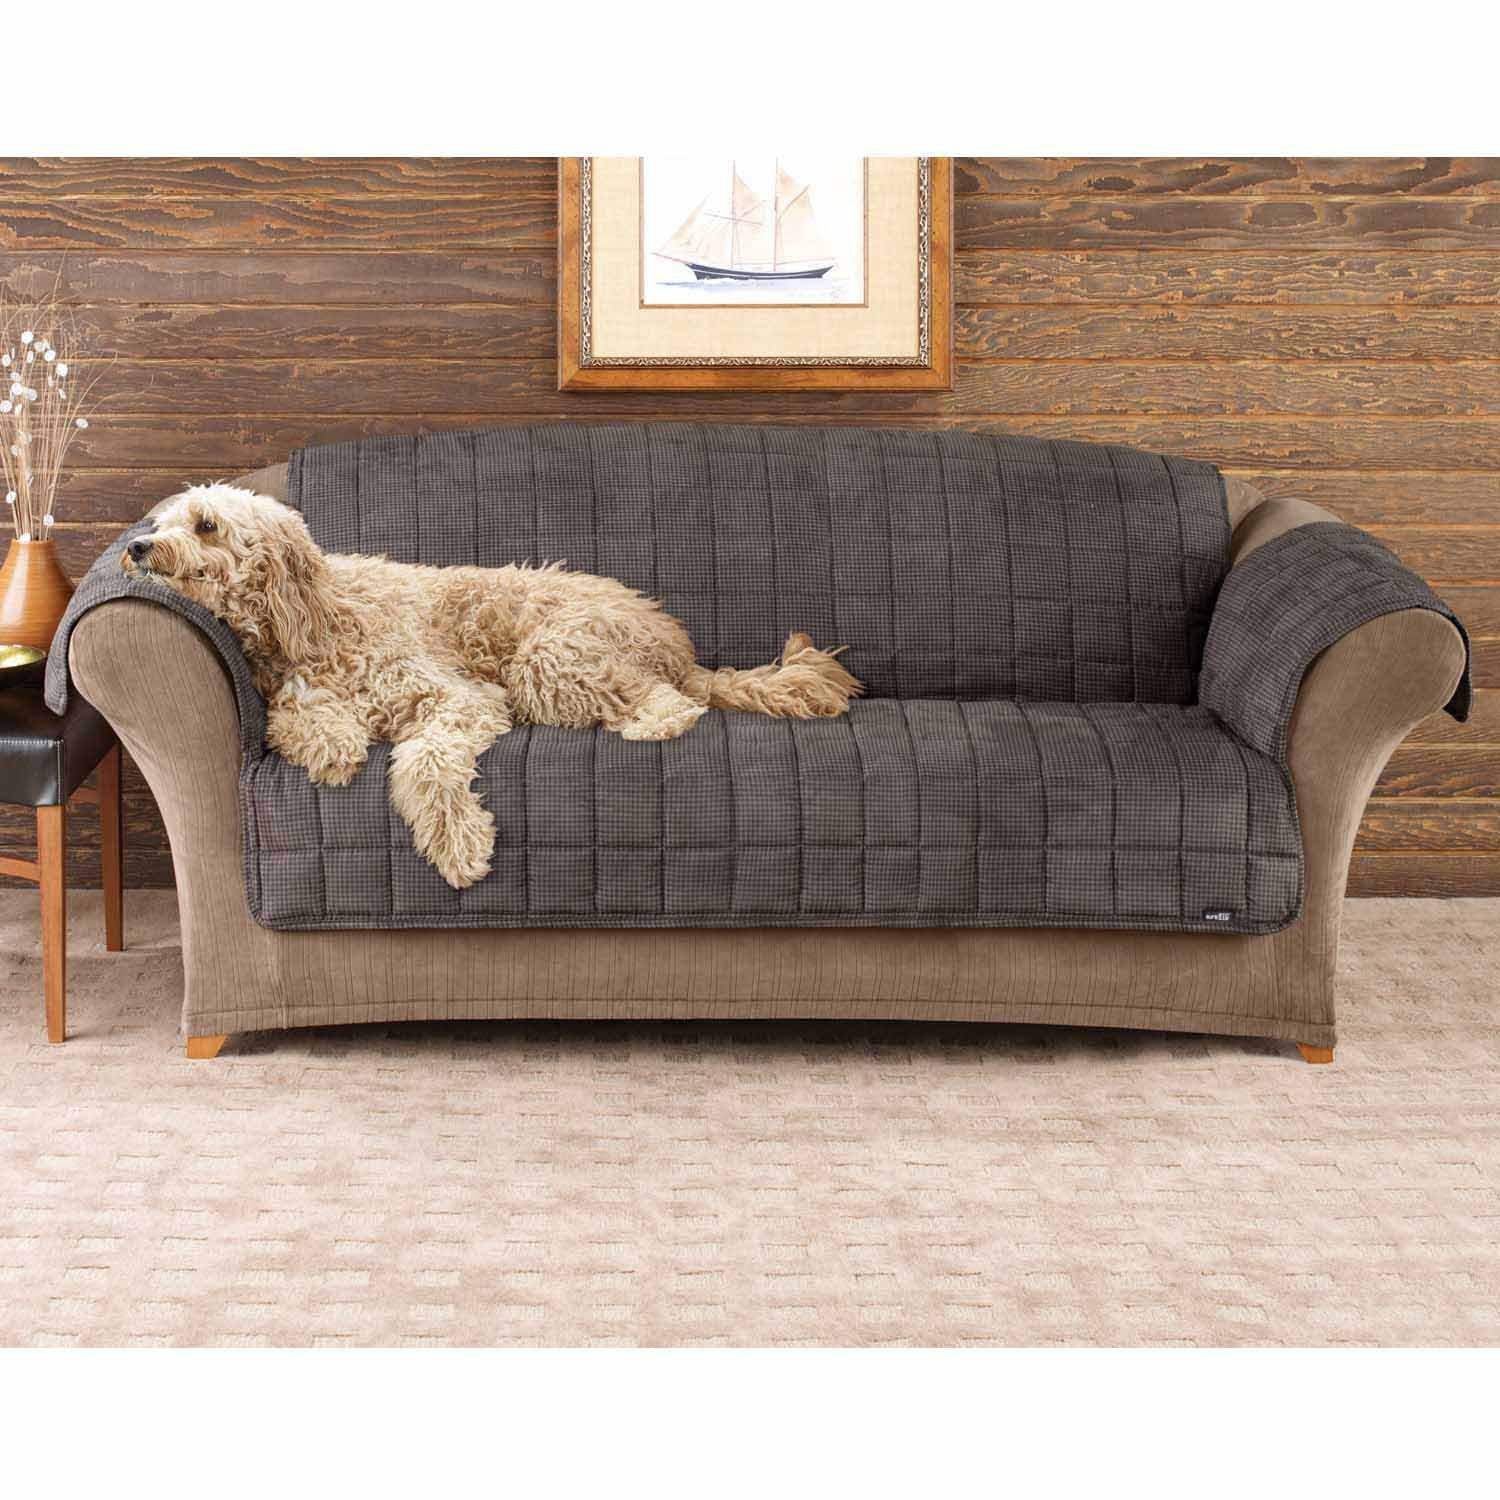 Sure Fit Deluxe Pet Cover  - Sofa Slipcover  - Sable (SF39227) by Surefit